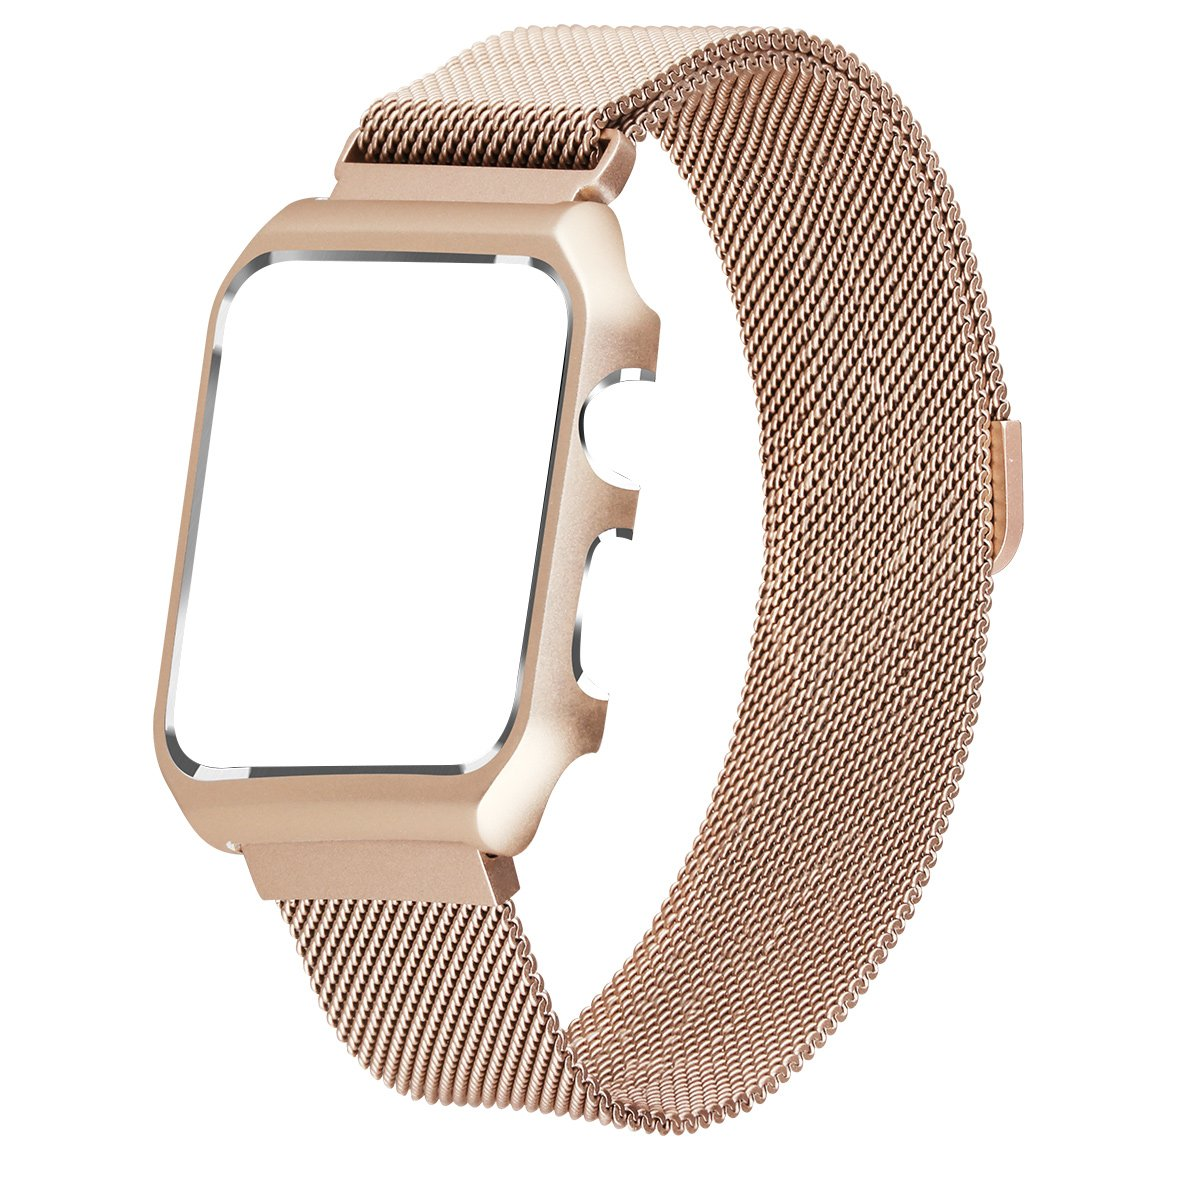 For Apple Watch Band Milanese Loop,Like It Y Stainless Steel Magnetic Band With Metal Case For Apple Watch Series 1/2   Shockproof Protective Bumper Replacement Strap(38mm Retro Gold) by Like It Y